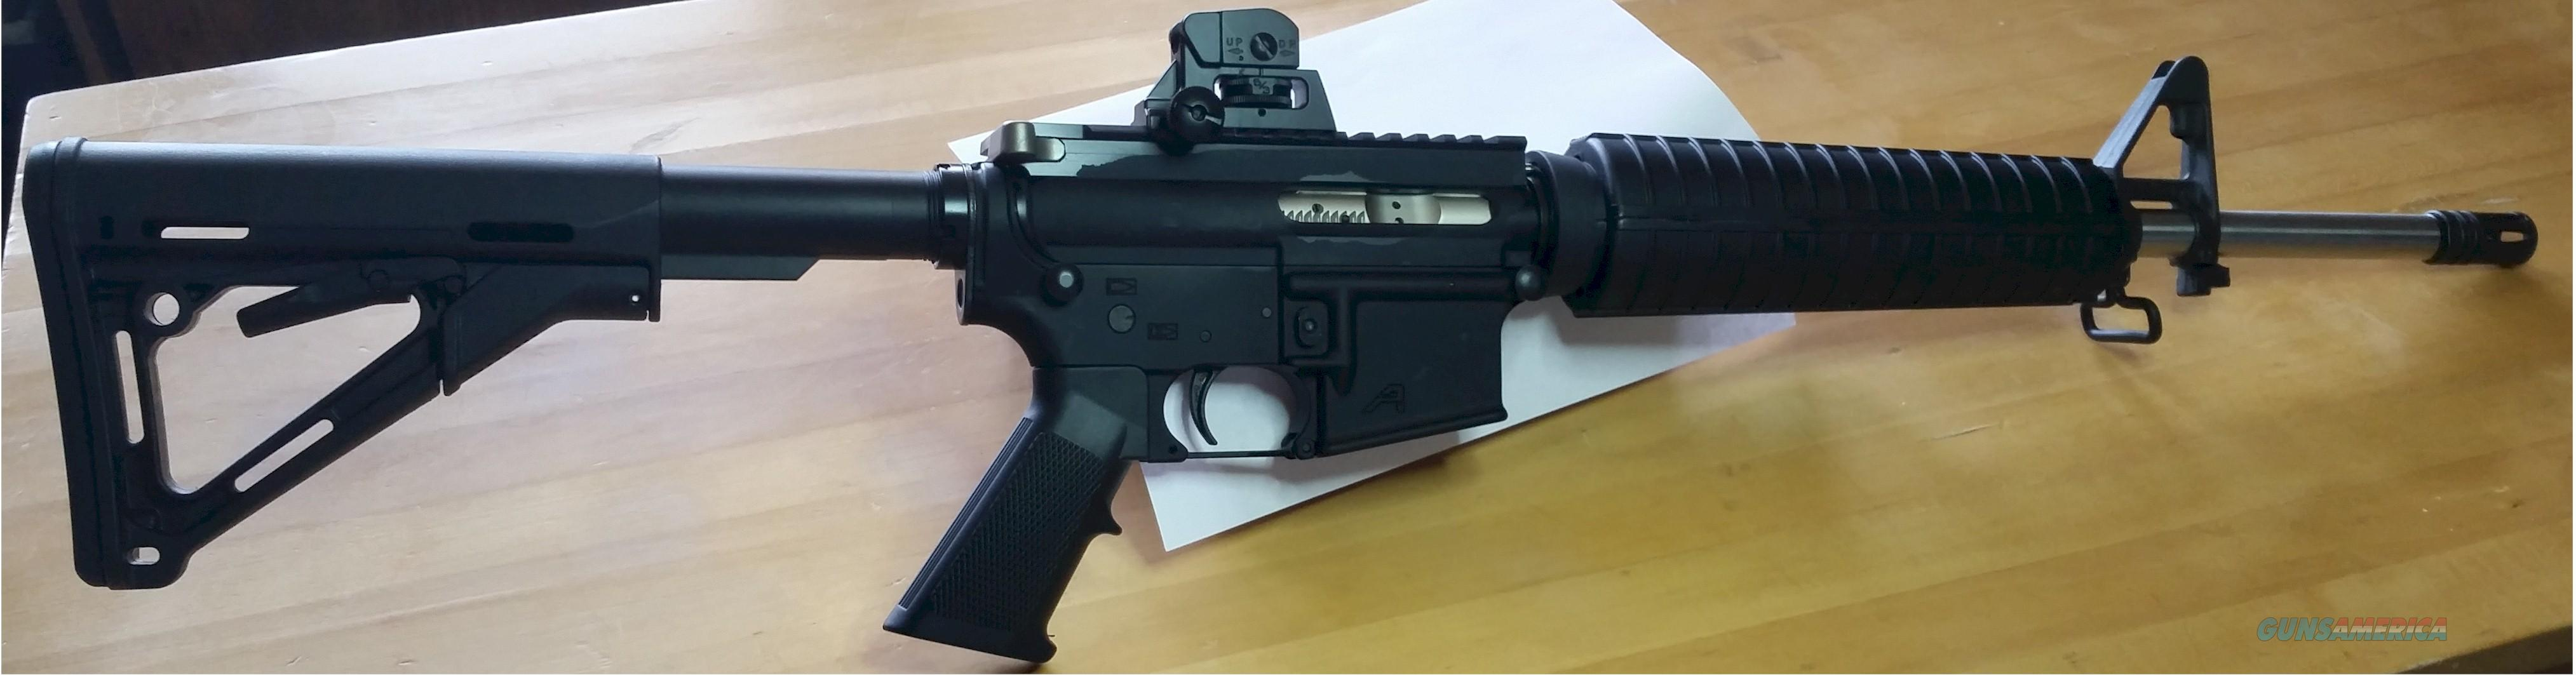 Custom AR15 Stainless  Guns > Rifles > AR-15 Rifles - Small Manufacturers > Complete Rifle